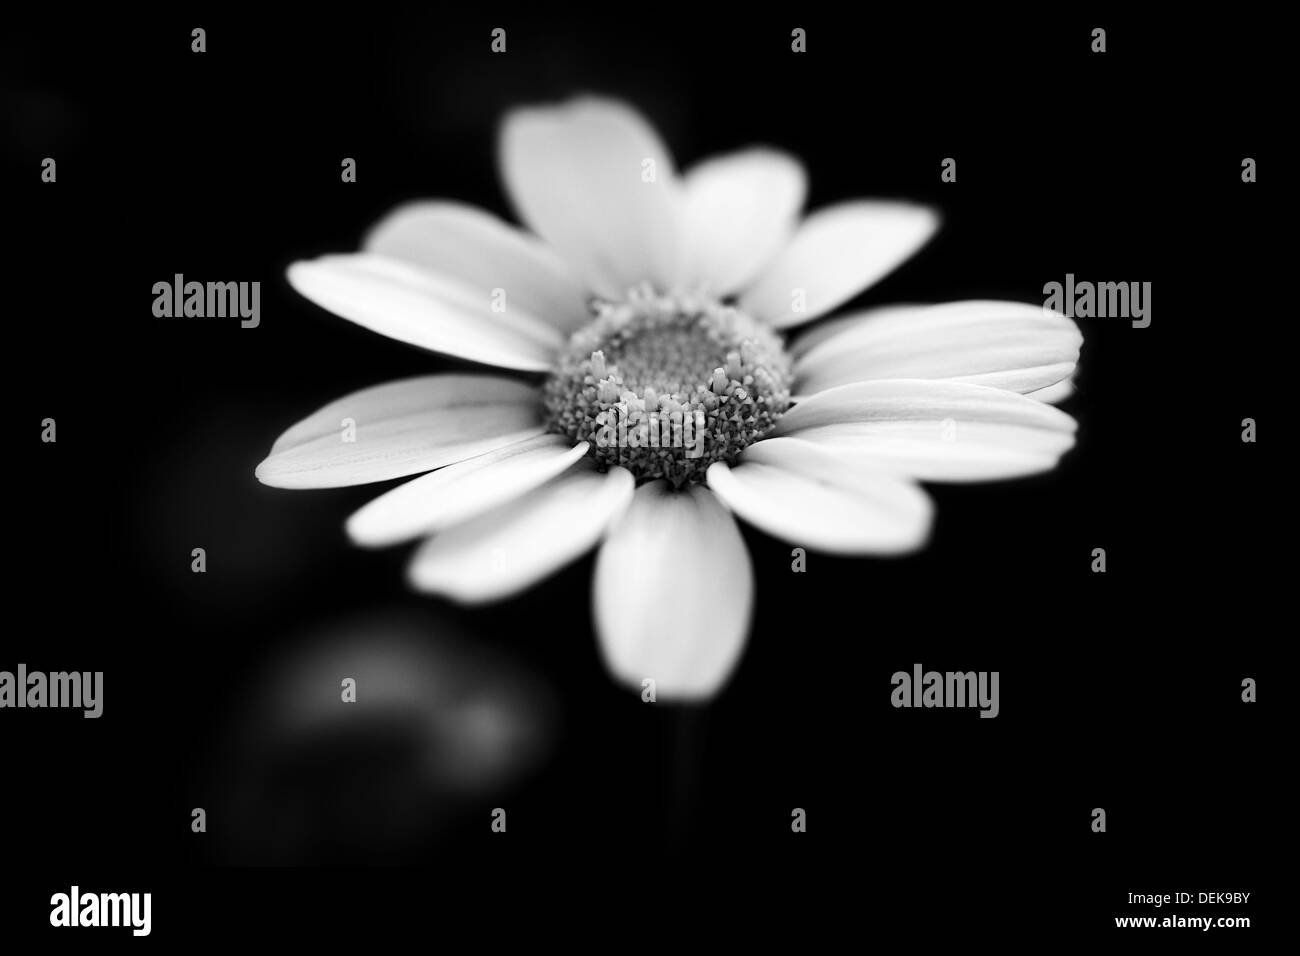 Cuadros En Blanco Y Nego Flores En Blanco Y Nego Top Premium Stock Photo Of Tonos